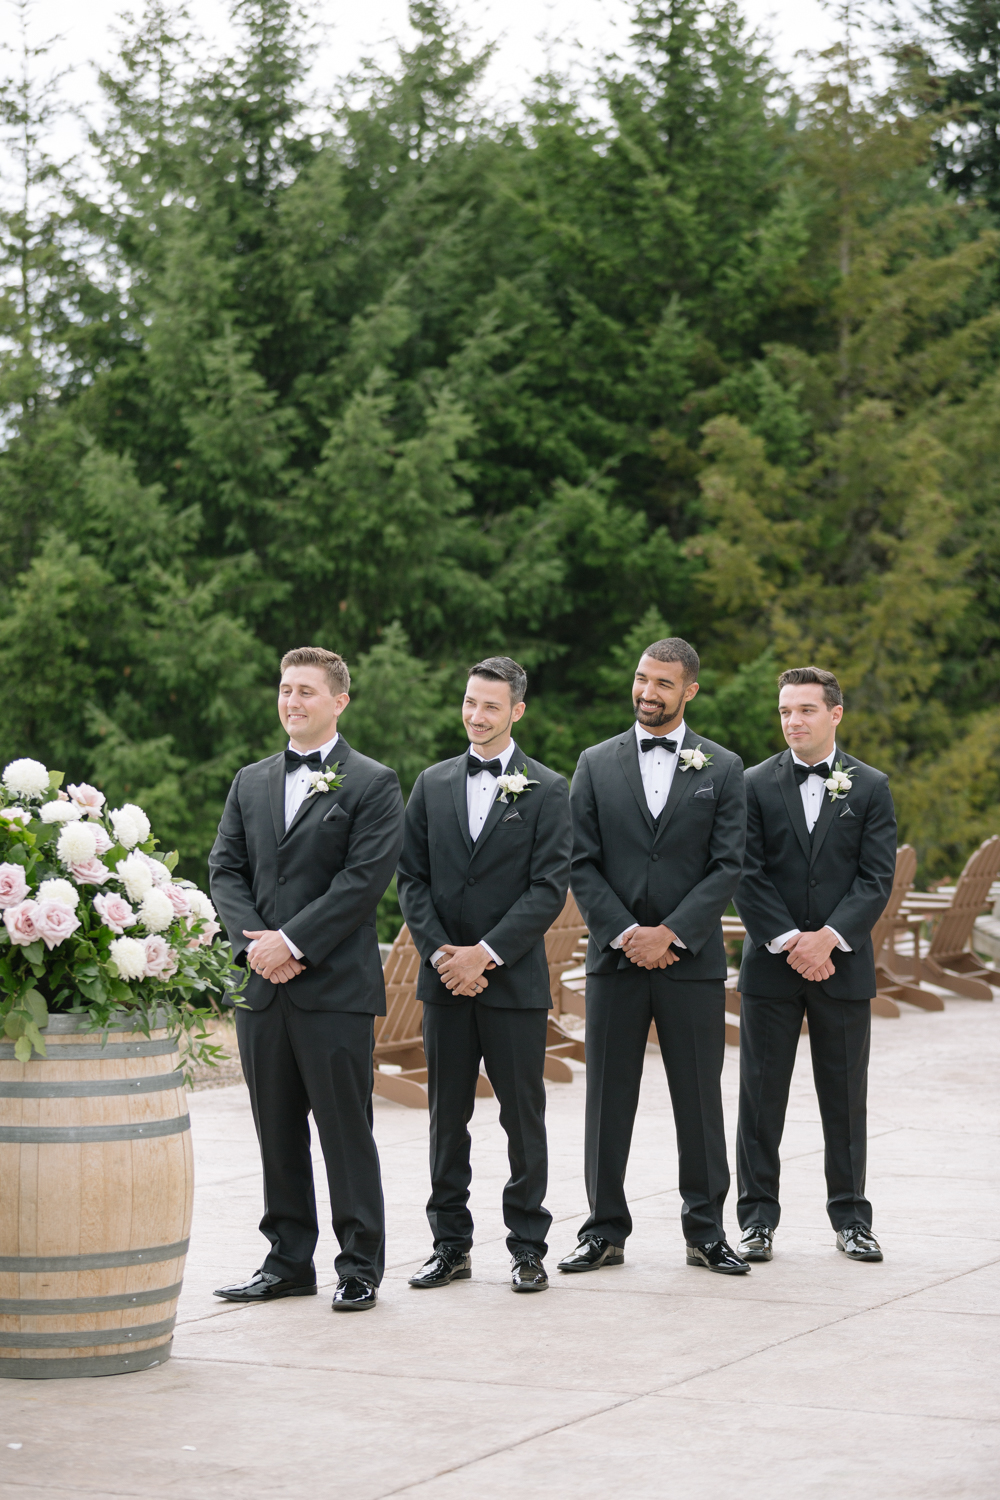 Youngberg Hill Vineyard Wedding in Wine Country Oregon - Corrie Mick Photography-294.jpg